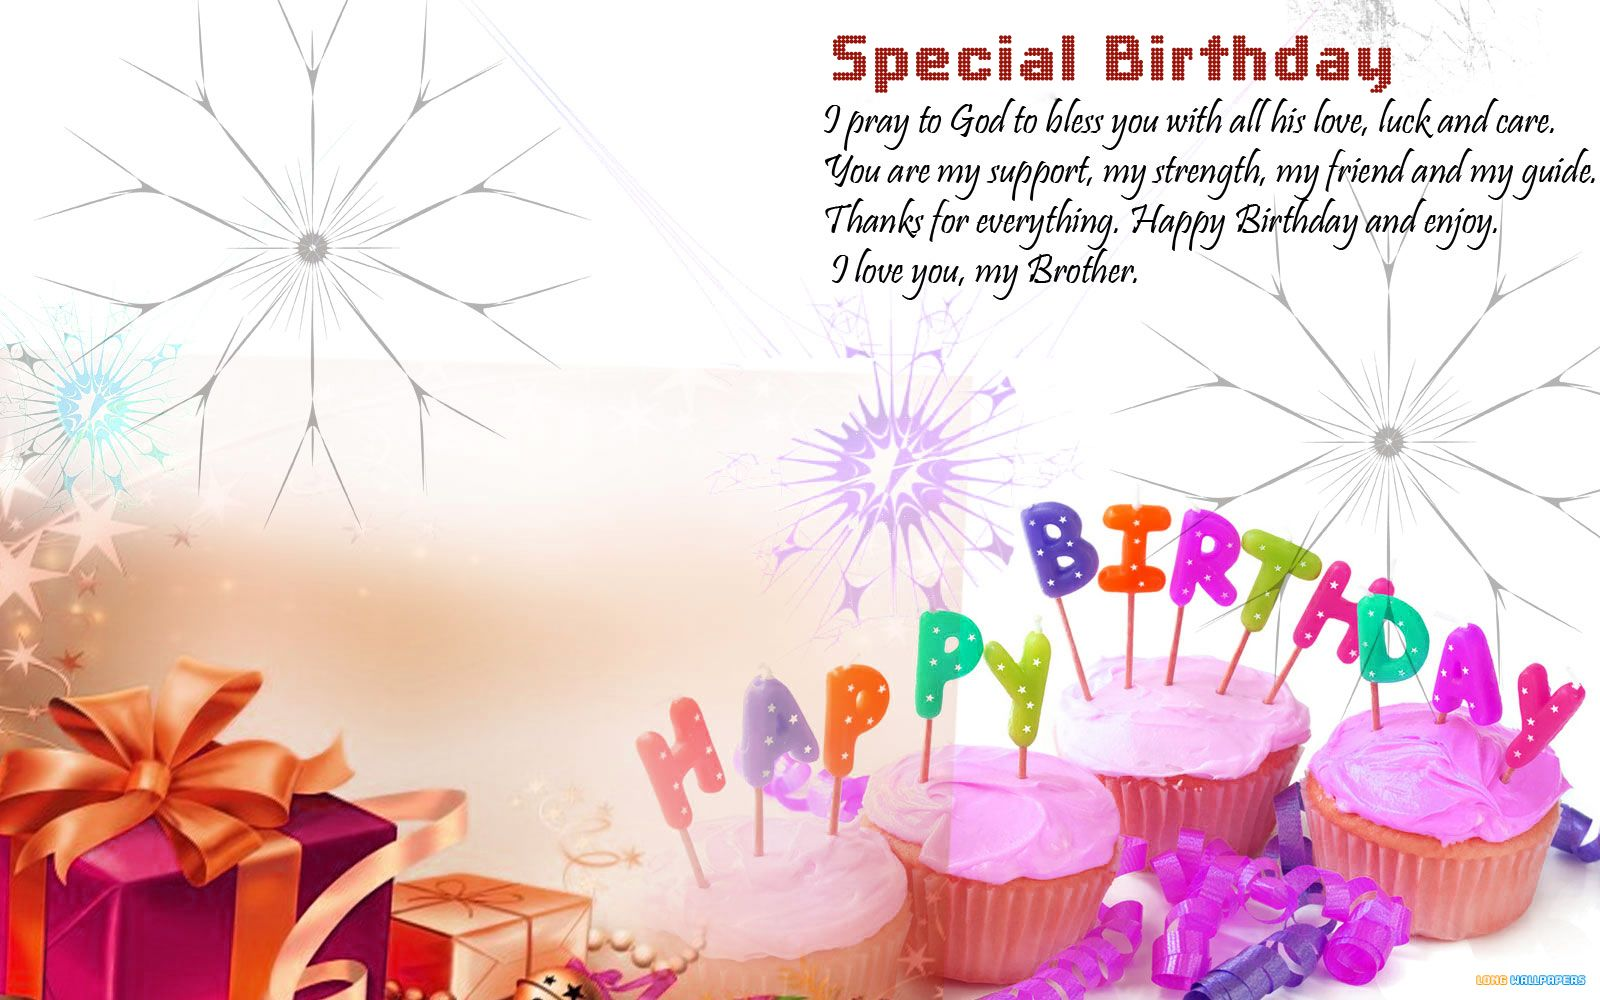 Happy birthday messages birthday cards pinterest birthday birthday invitations by sms hd images 3 hd wallpapers stopboris Gallery